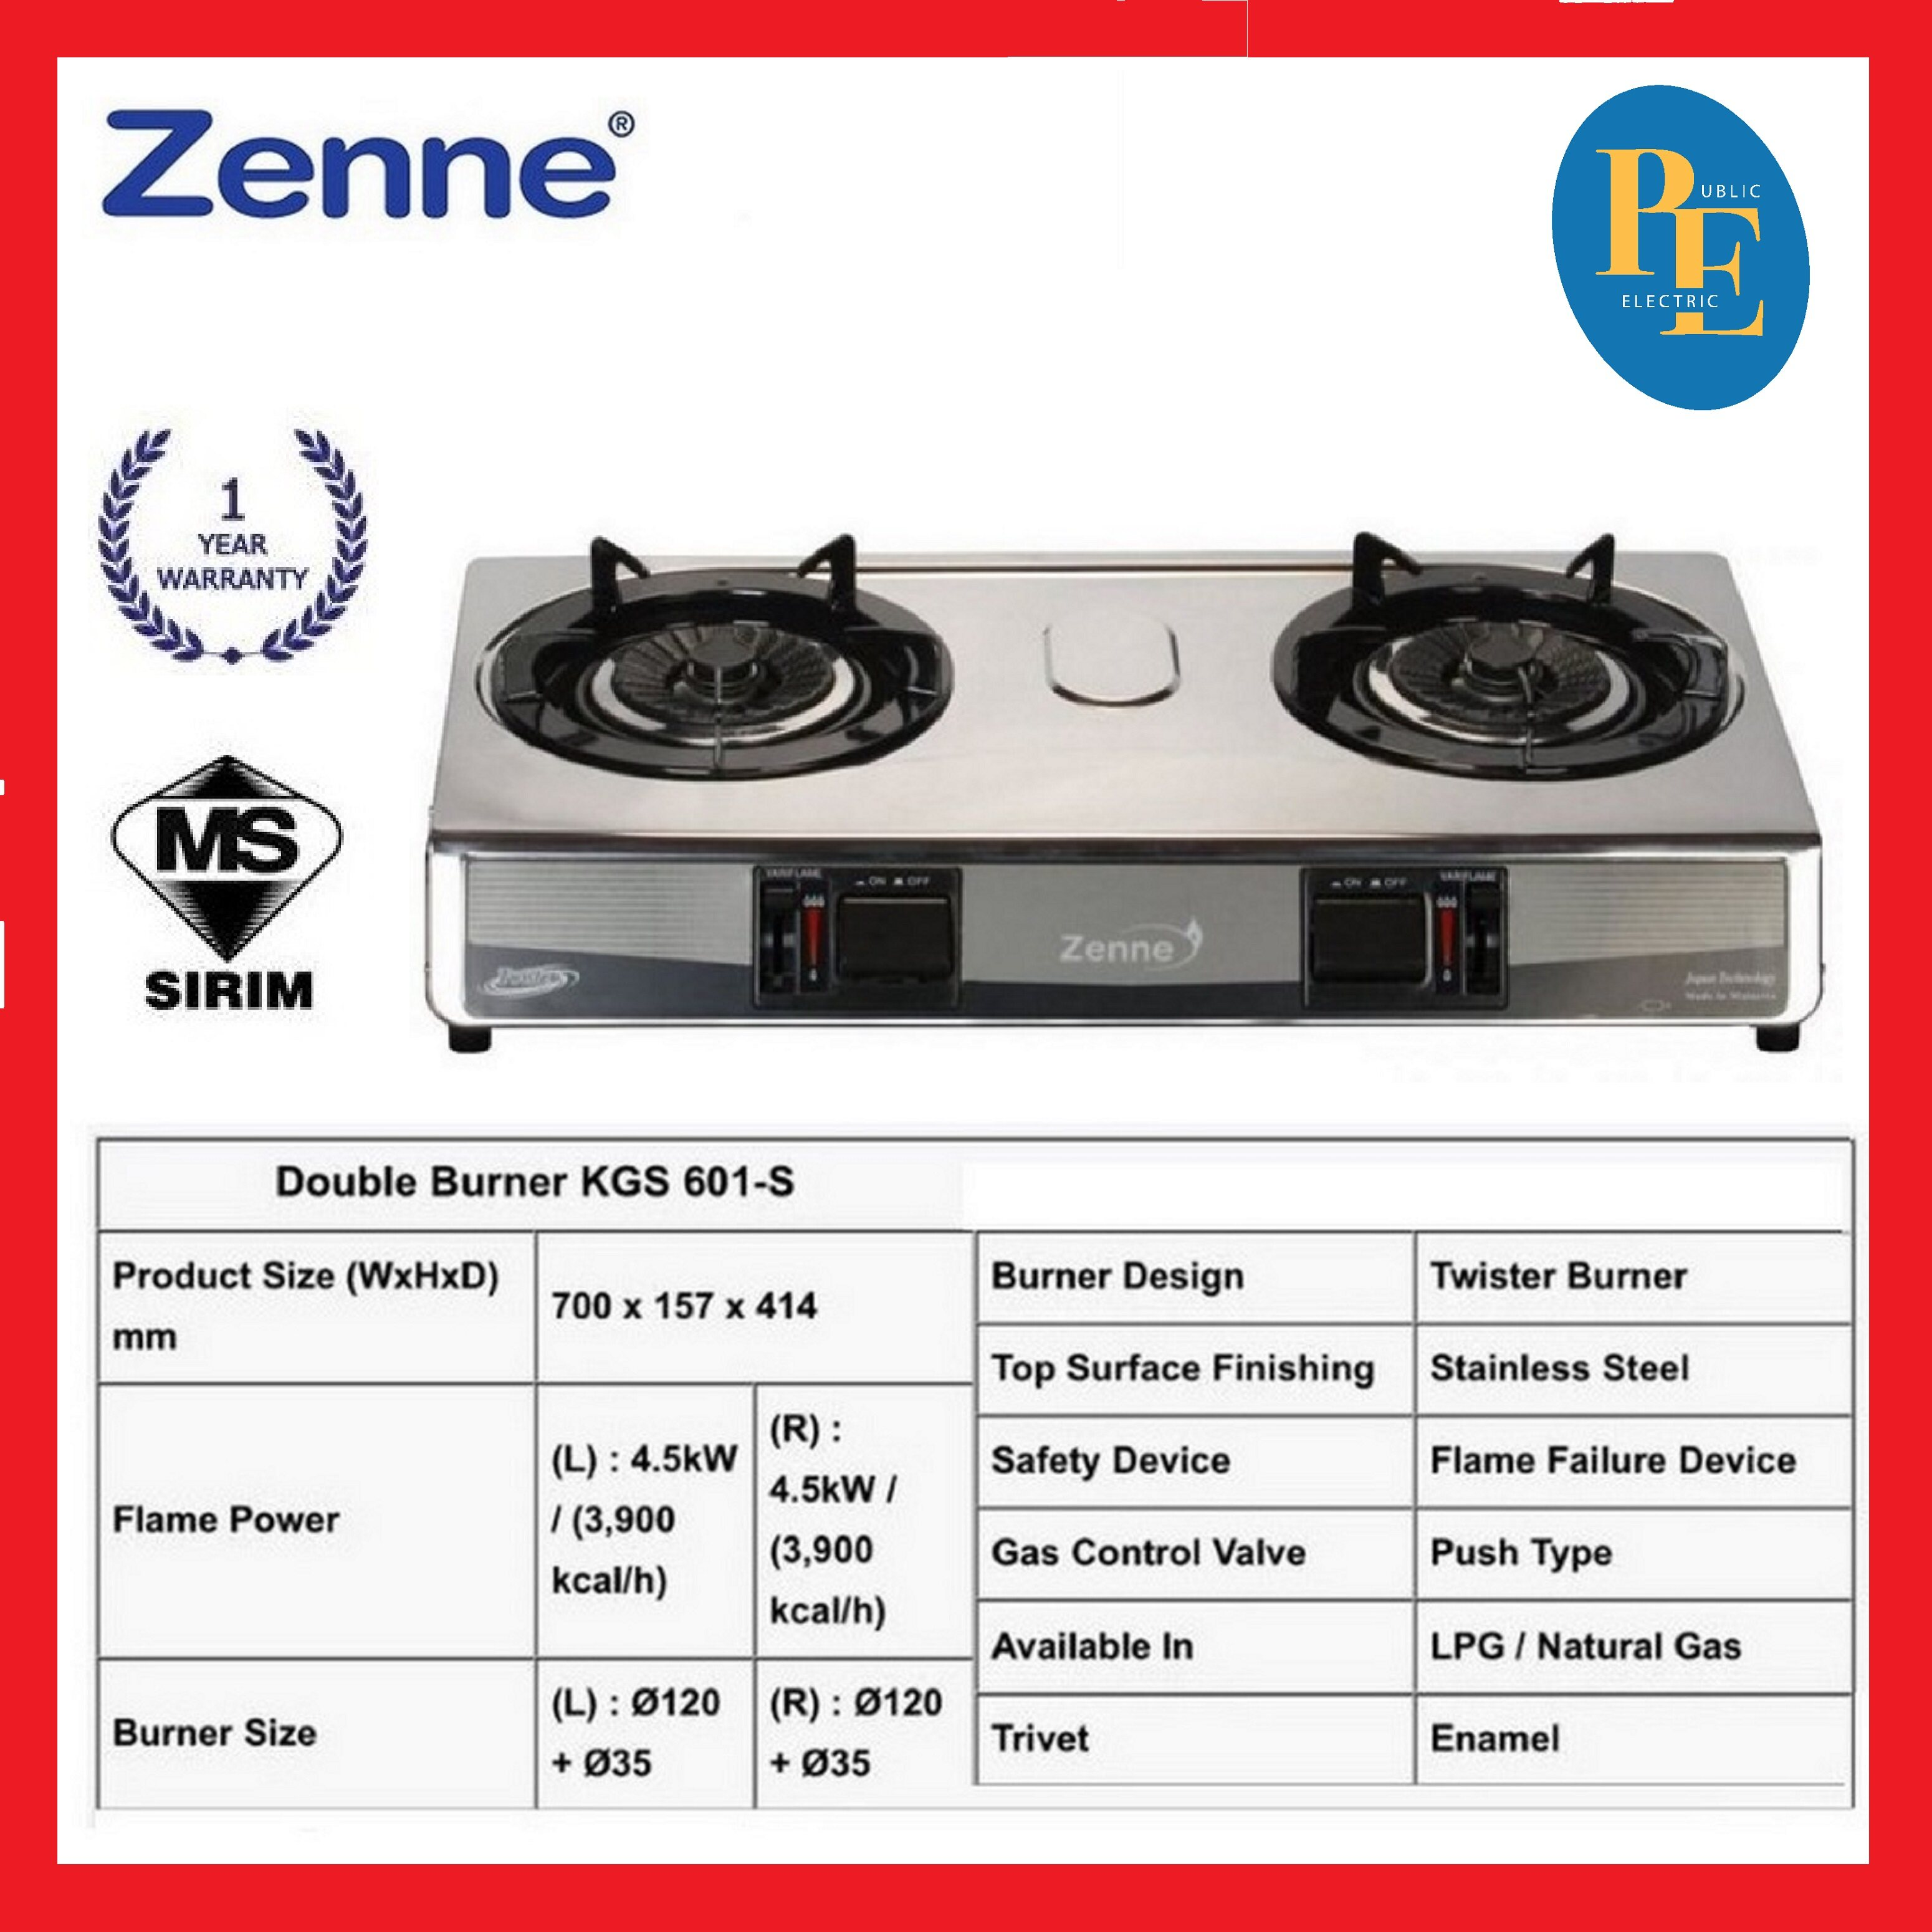 Zenne Twister Burners Gas Cooker Gas Stove - Flame Failure Device - KGS 601